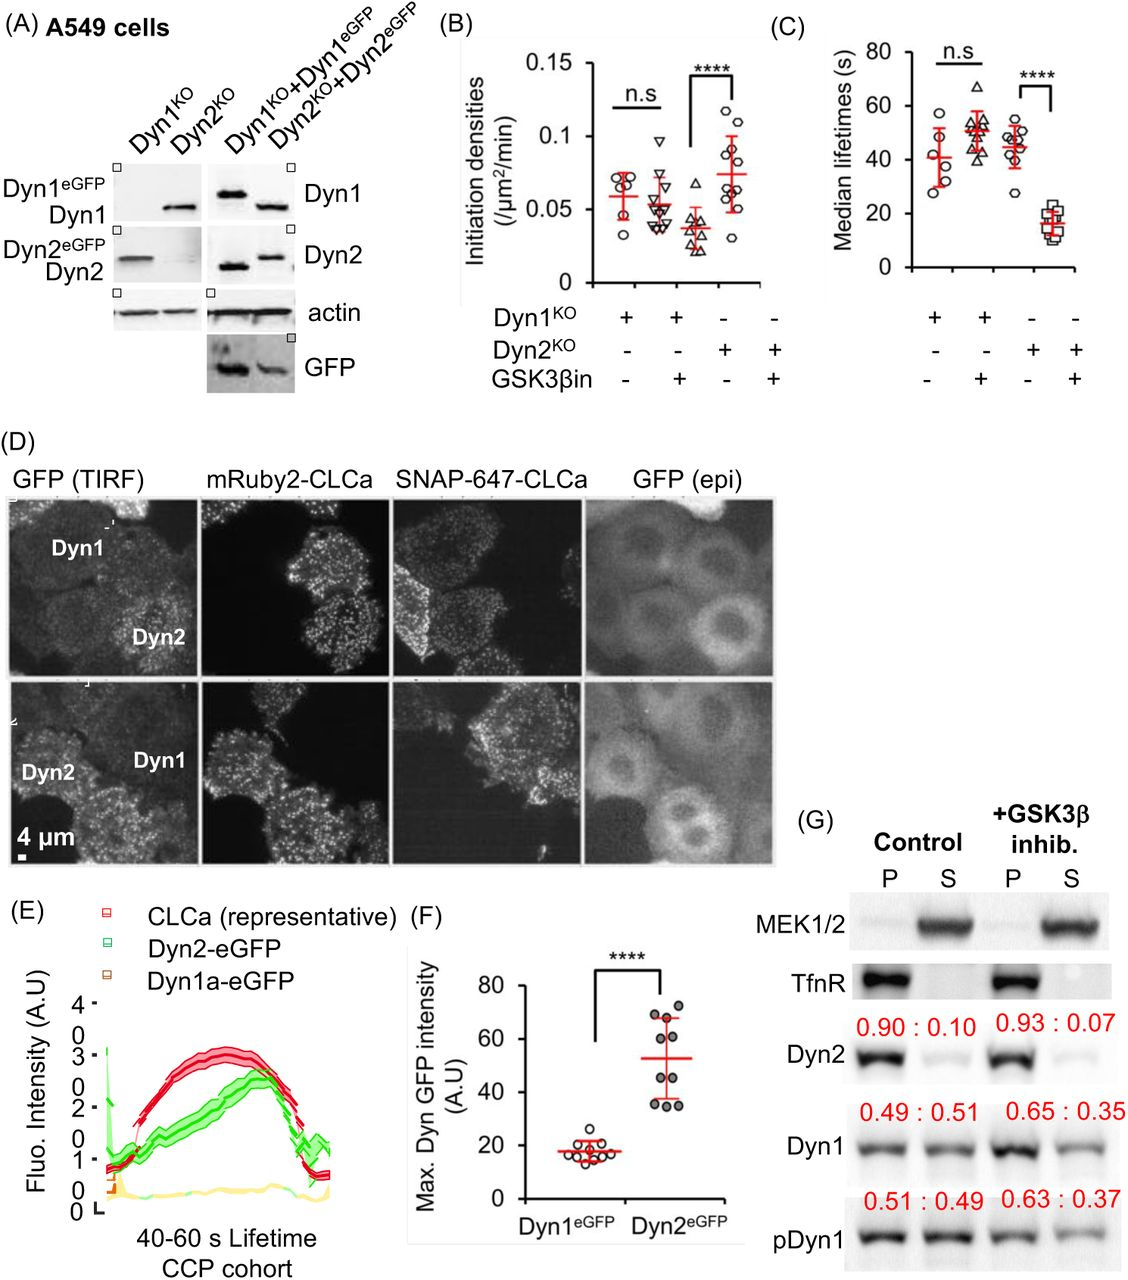 A non-canonical role for dynamin-1 in regulating early stages of